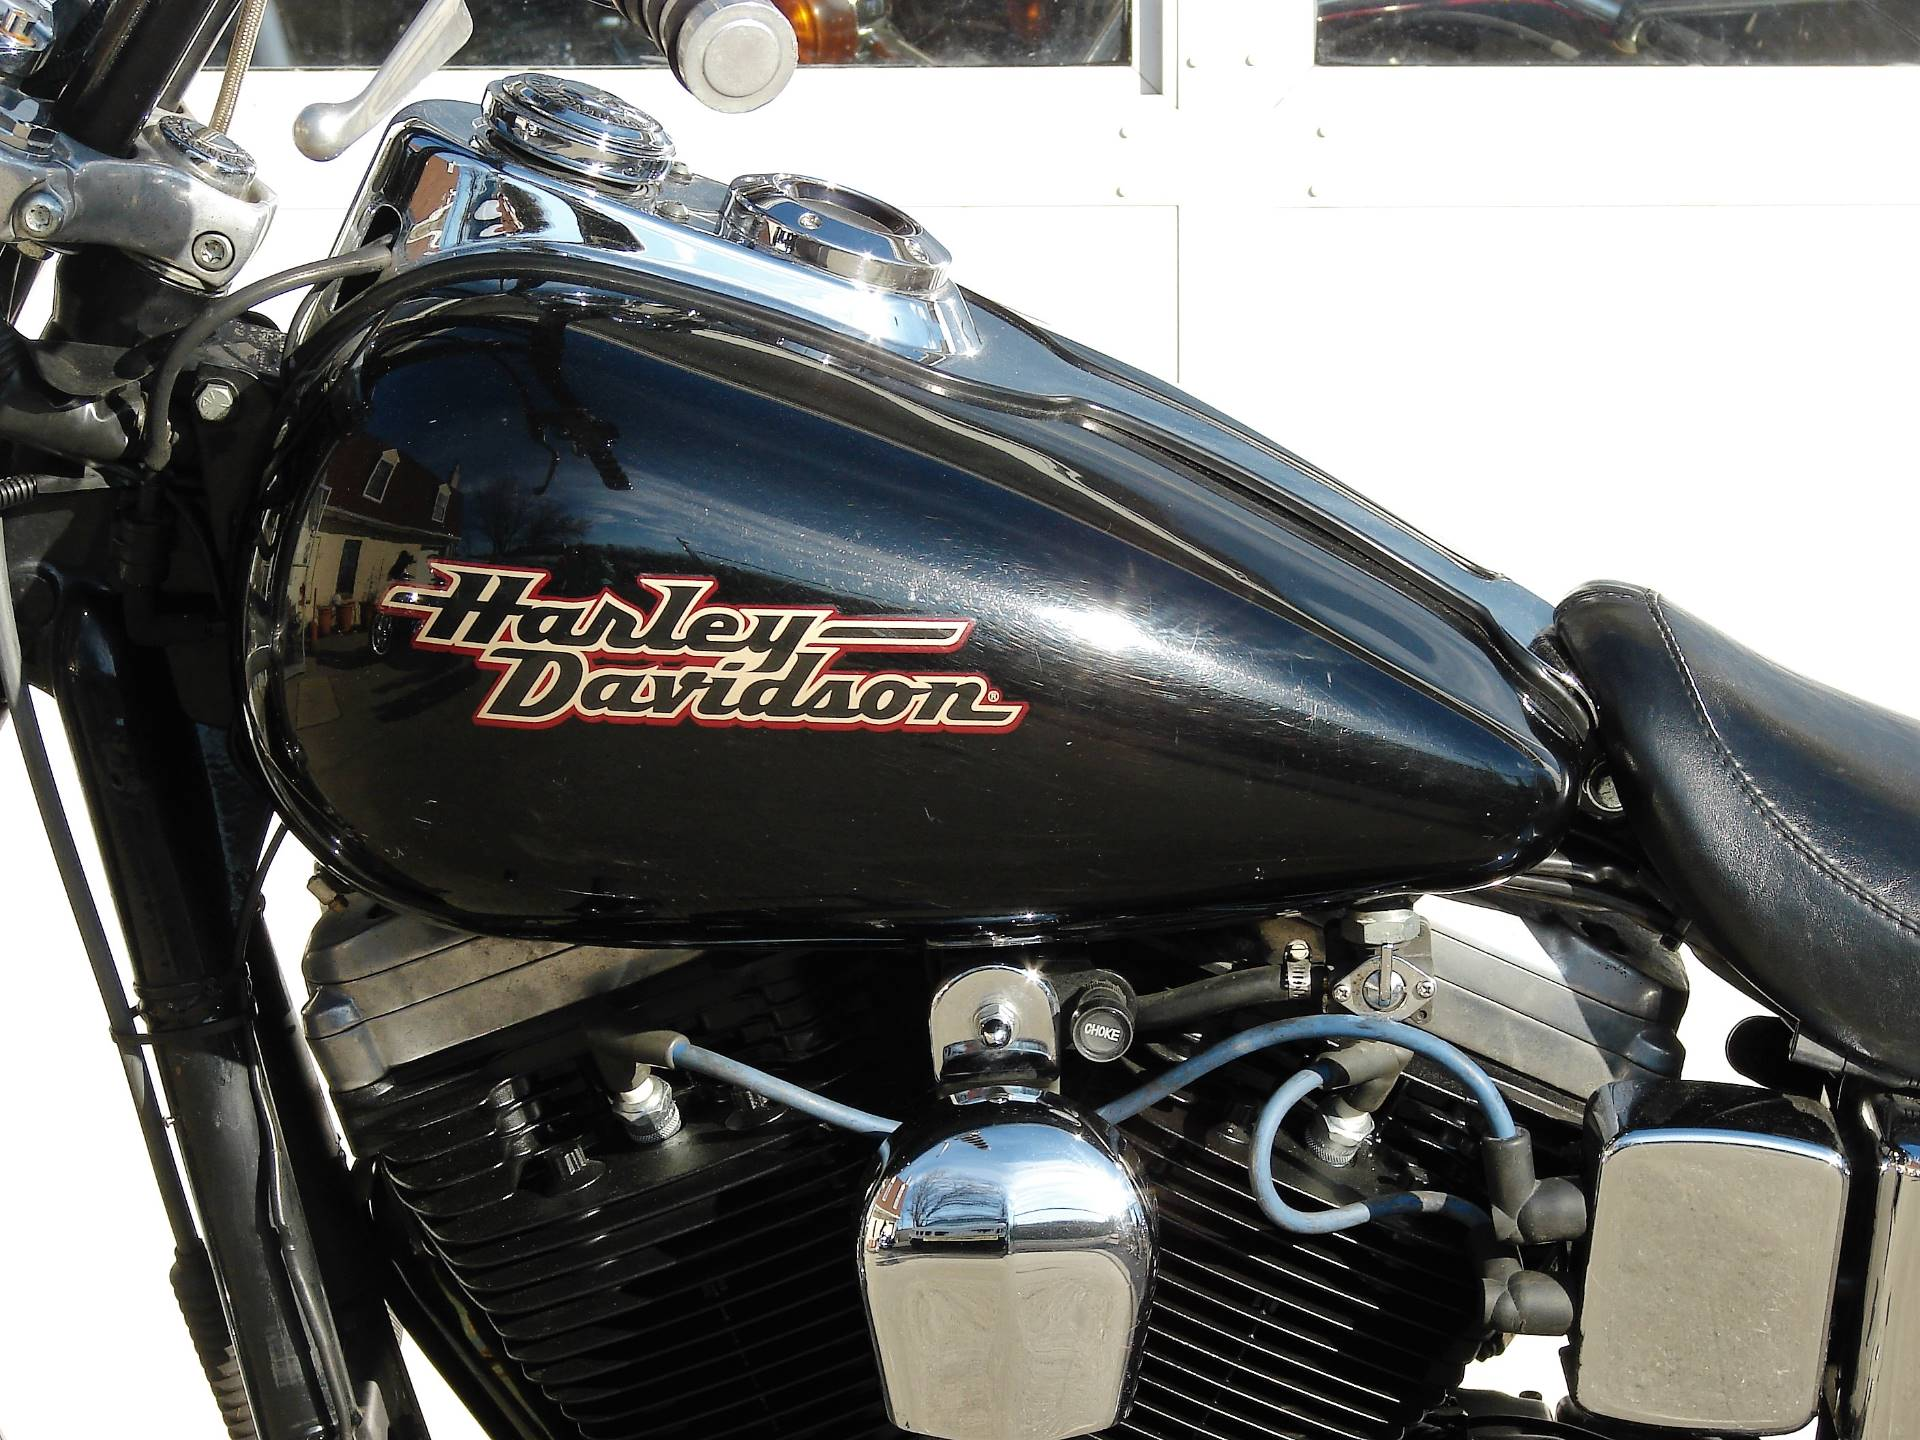 "1996 Harley-Davidson Dyna Glide ""Low Rider""   (Black) in Williamstown, New Jersey - Photo 13"